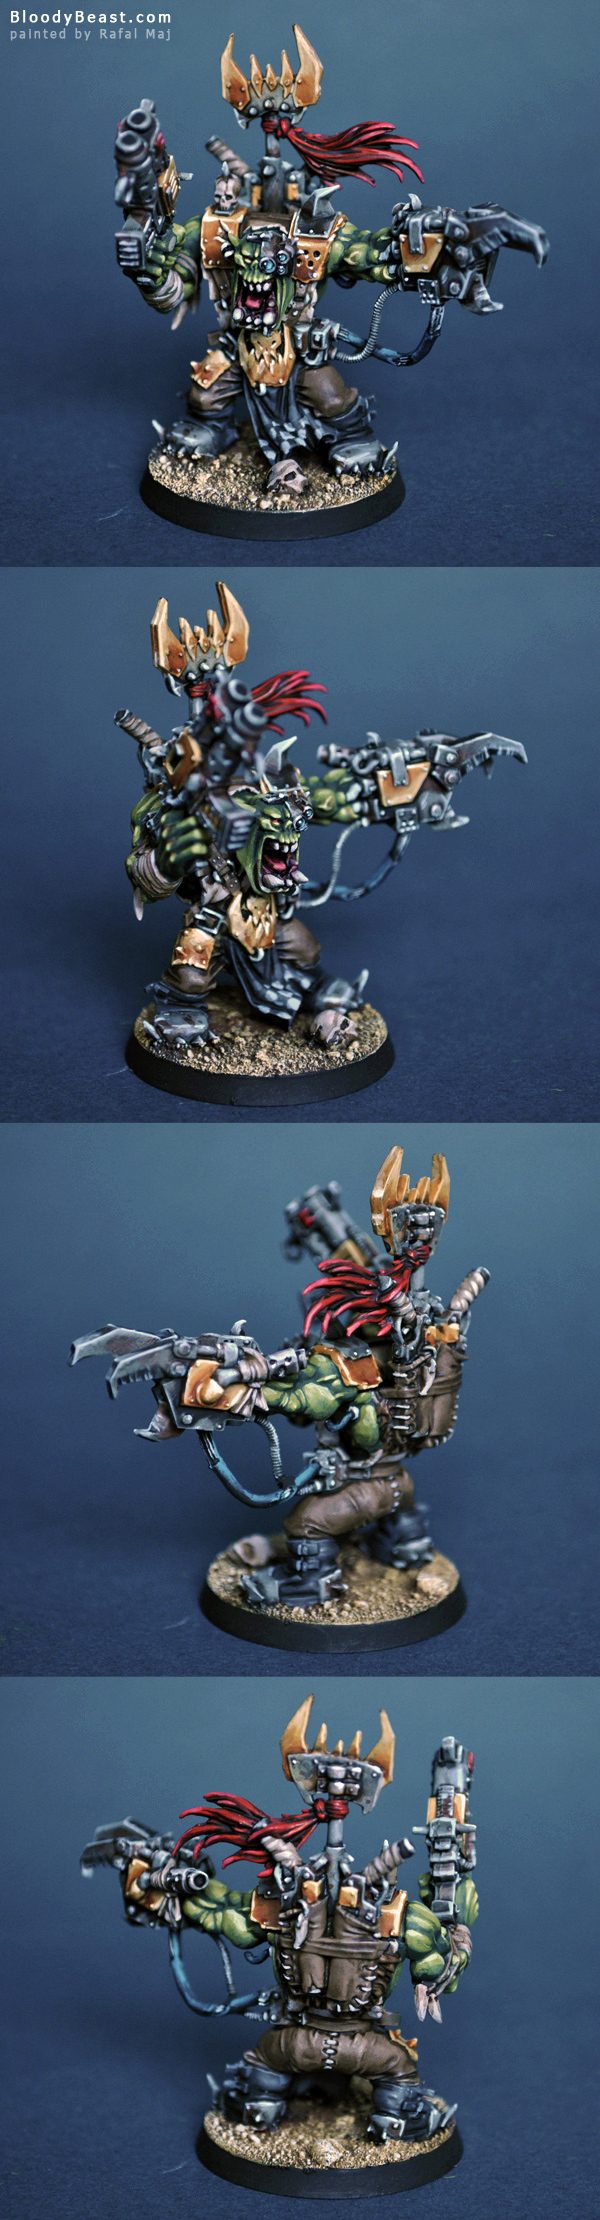 Ork Warboss painted by Rafal Maj (BloodyBeast.com)